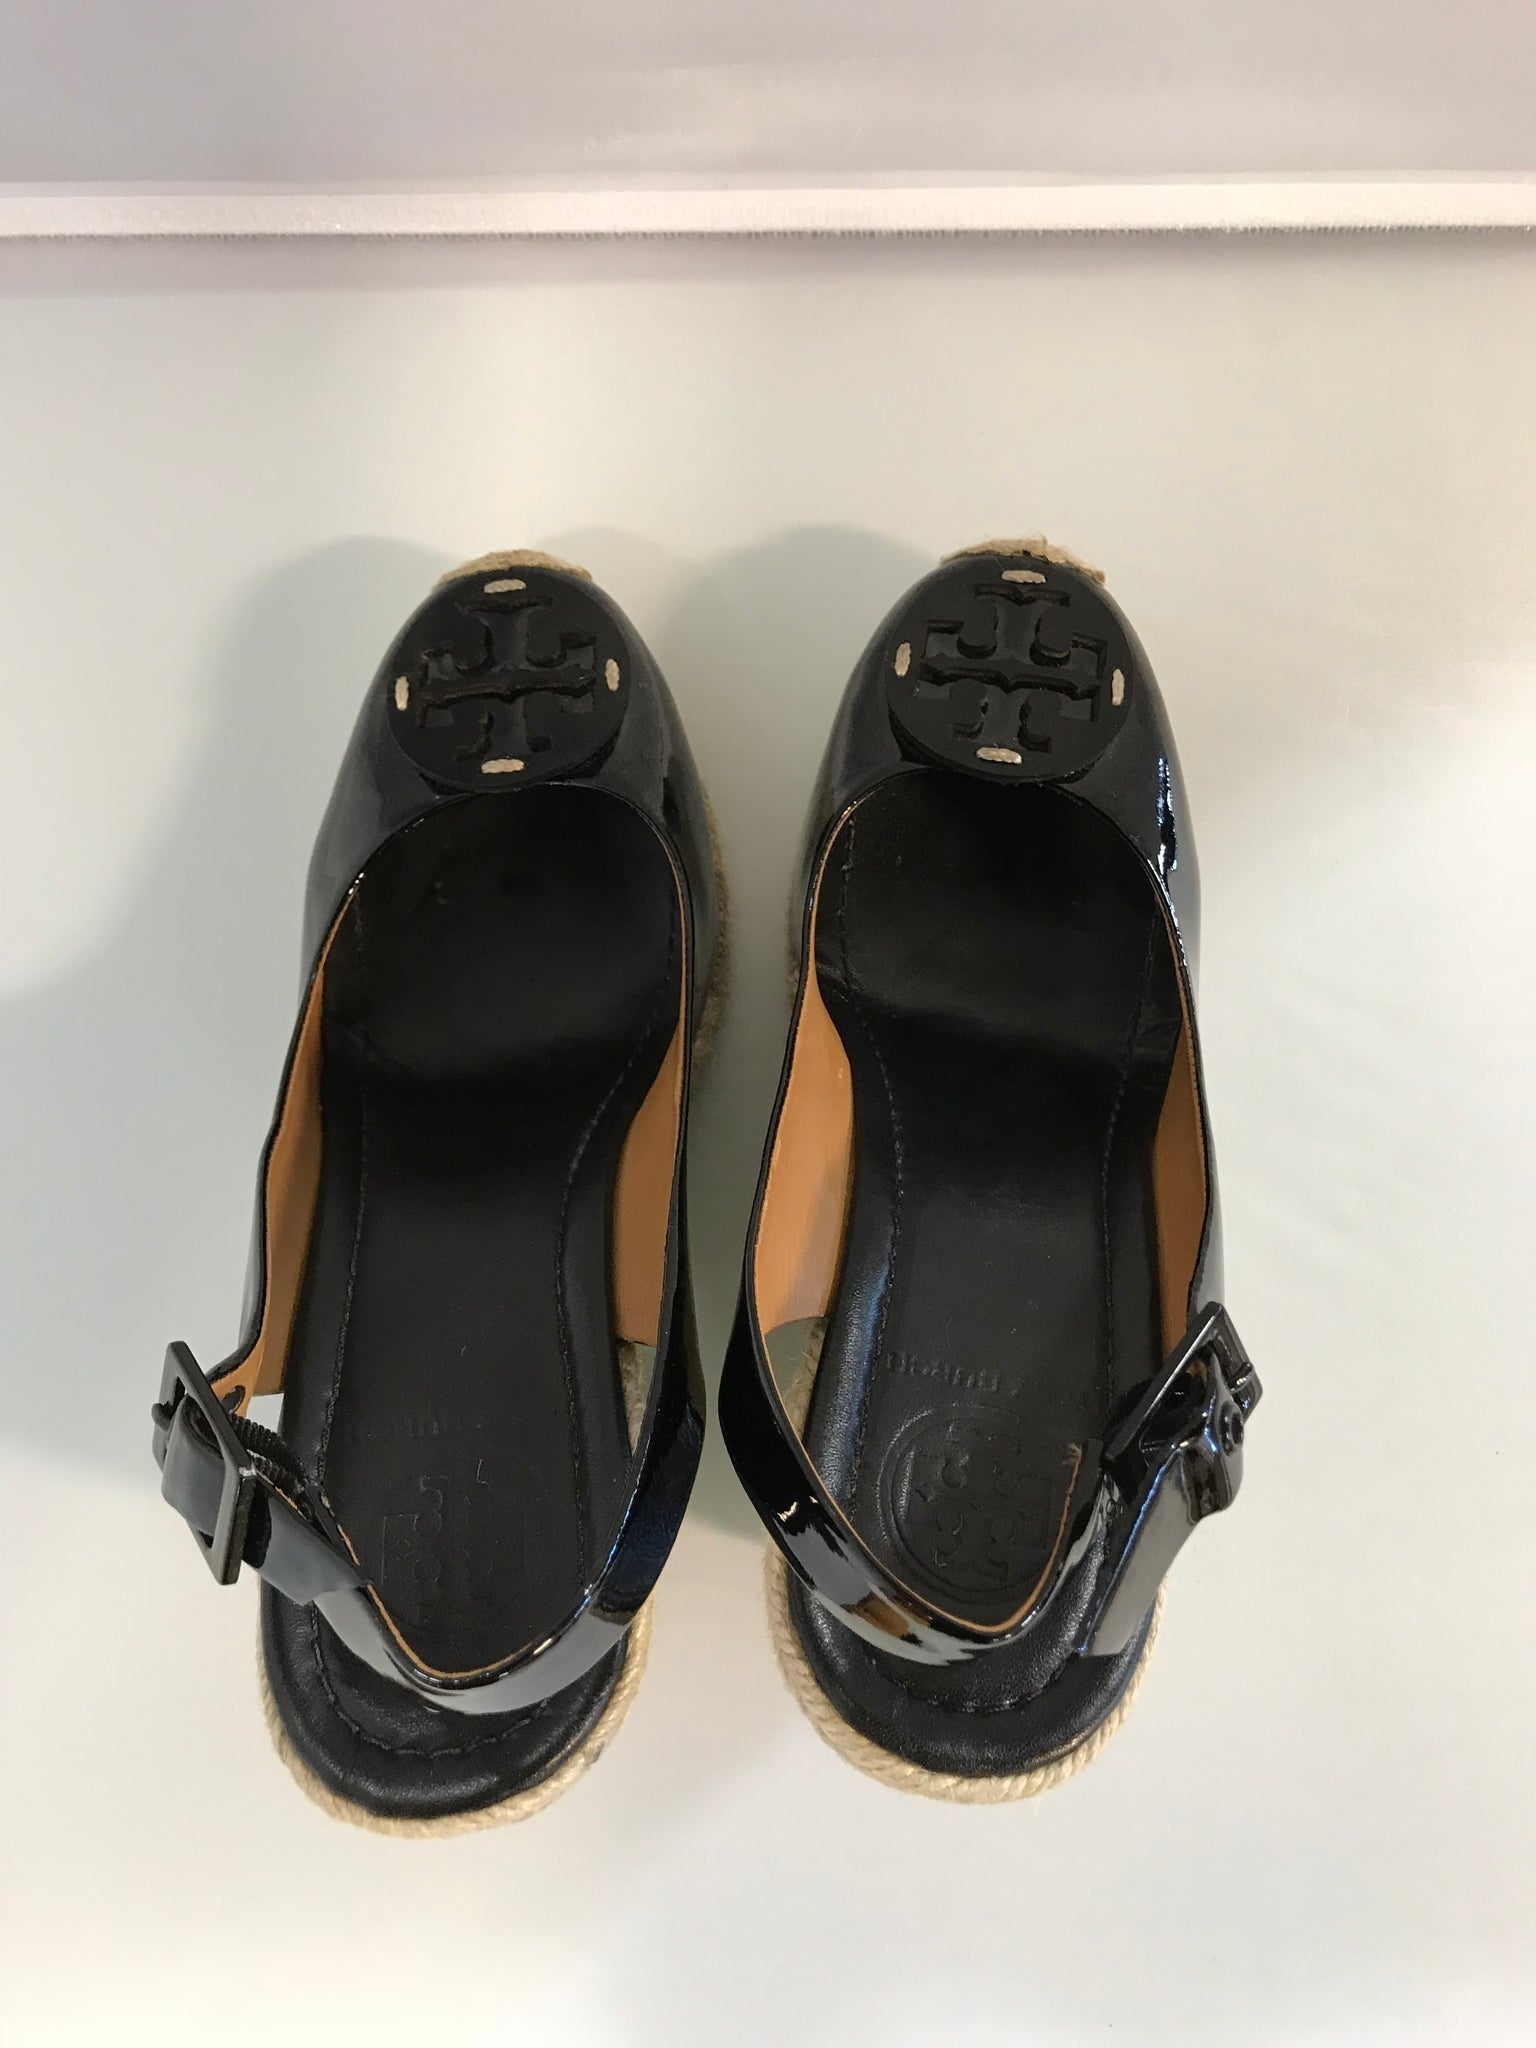 Tory Burch Black Adjustable strap Wedge